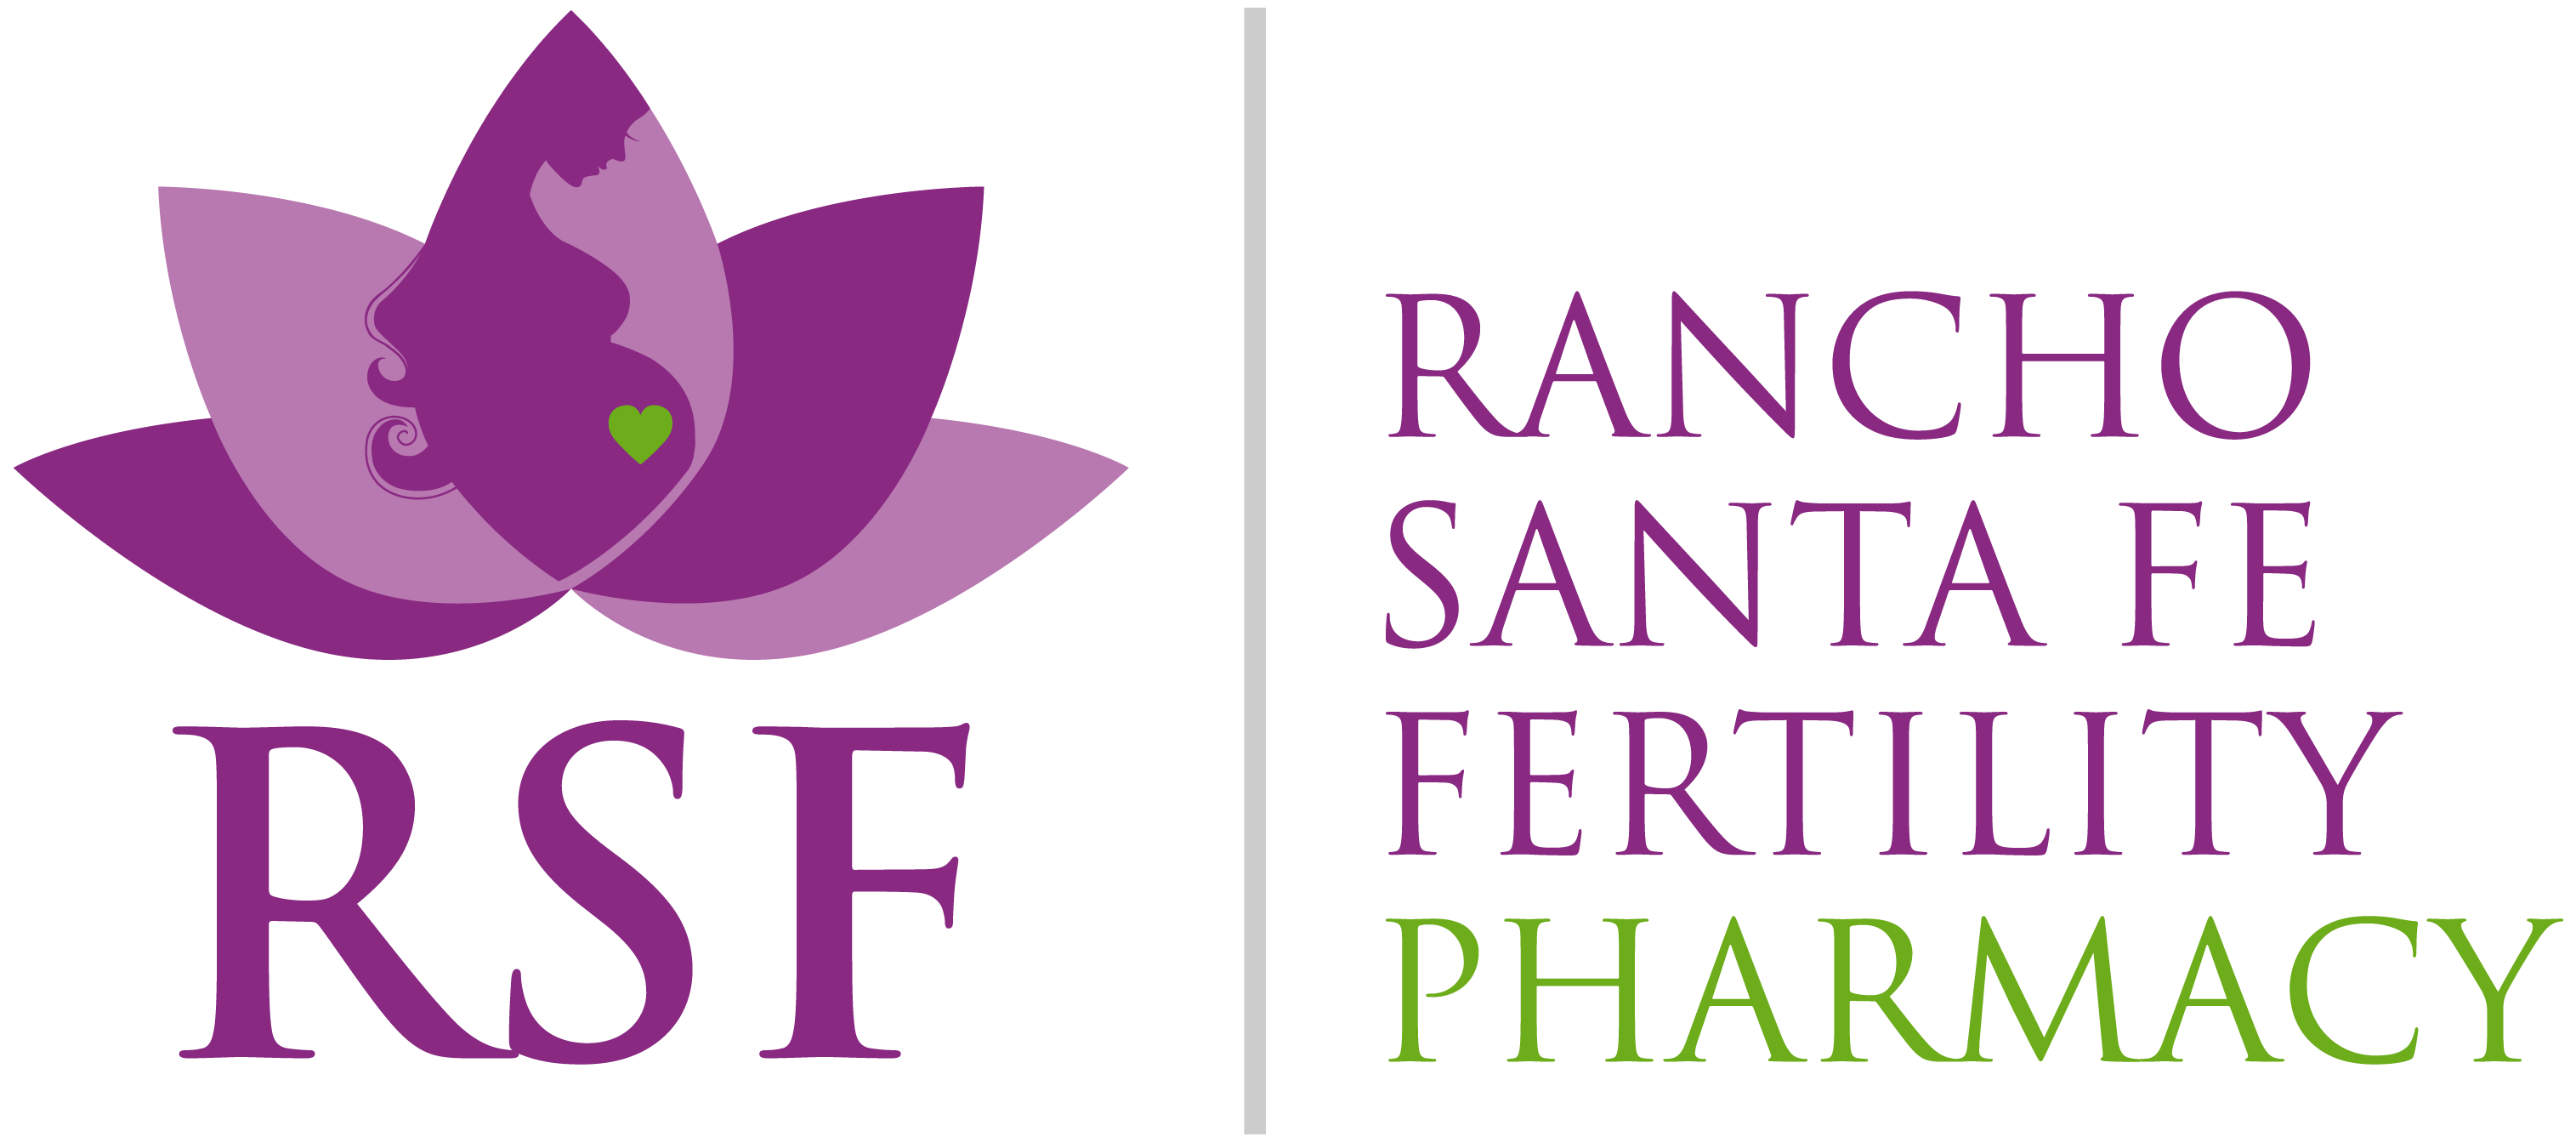 Fertility Specialists | Rancho Santa Fe Pharmacy